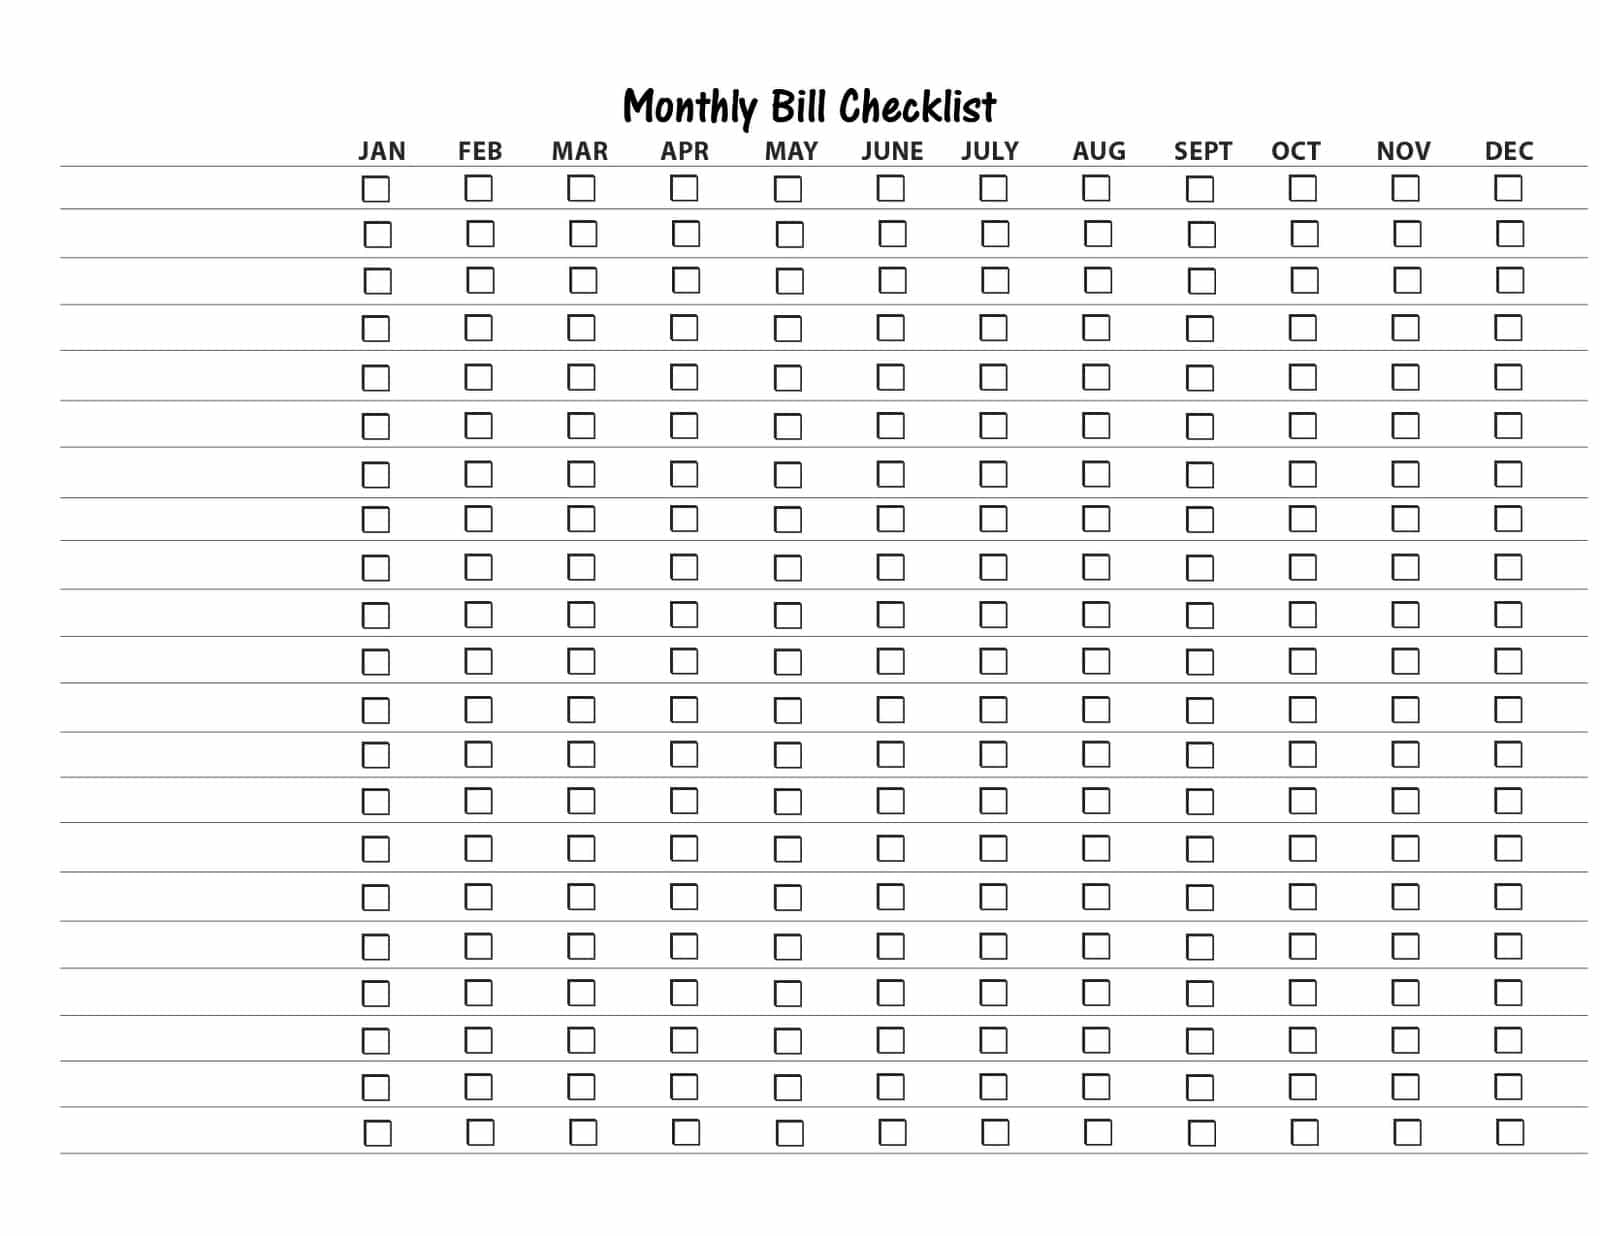 Free Printable Bill Payment List And Bill Payment Checklist Pdf pertaining to Free Printable Bill Organizer Monthly Bill Pay